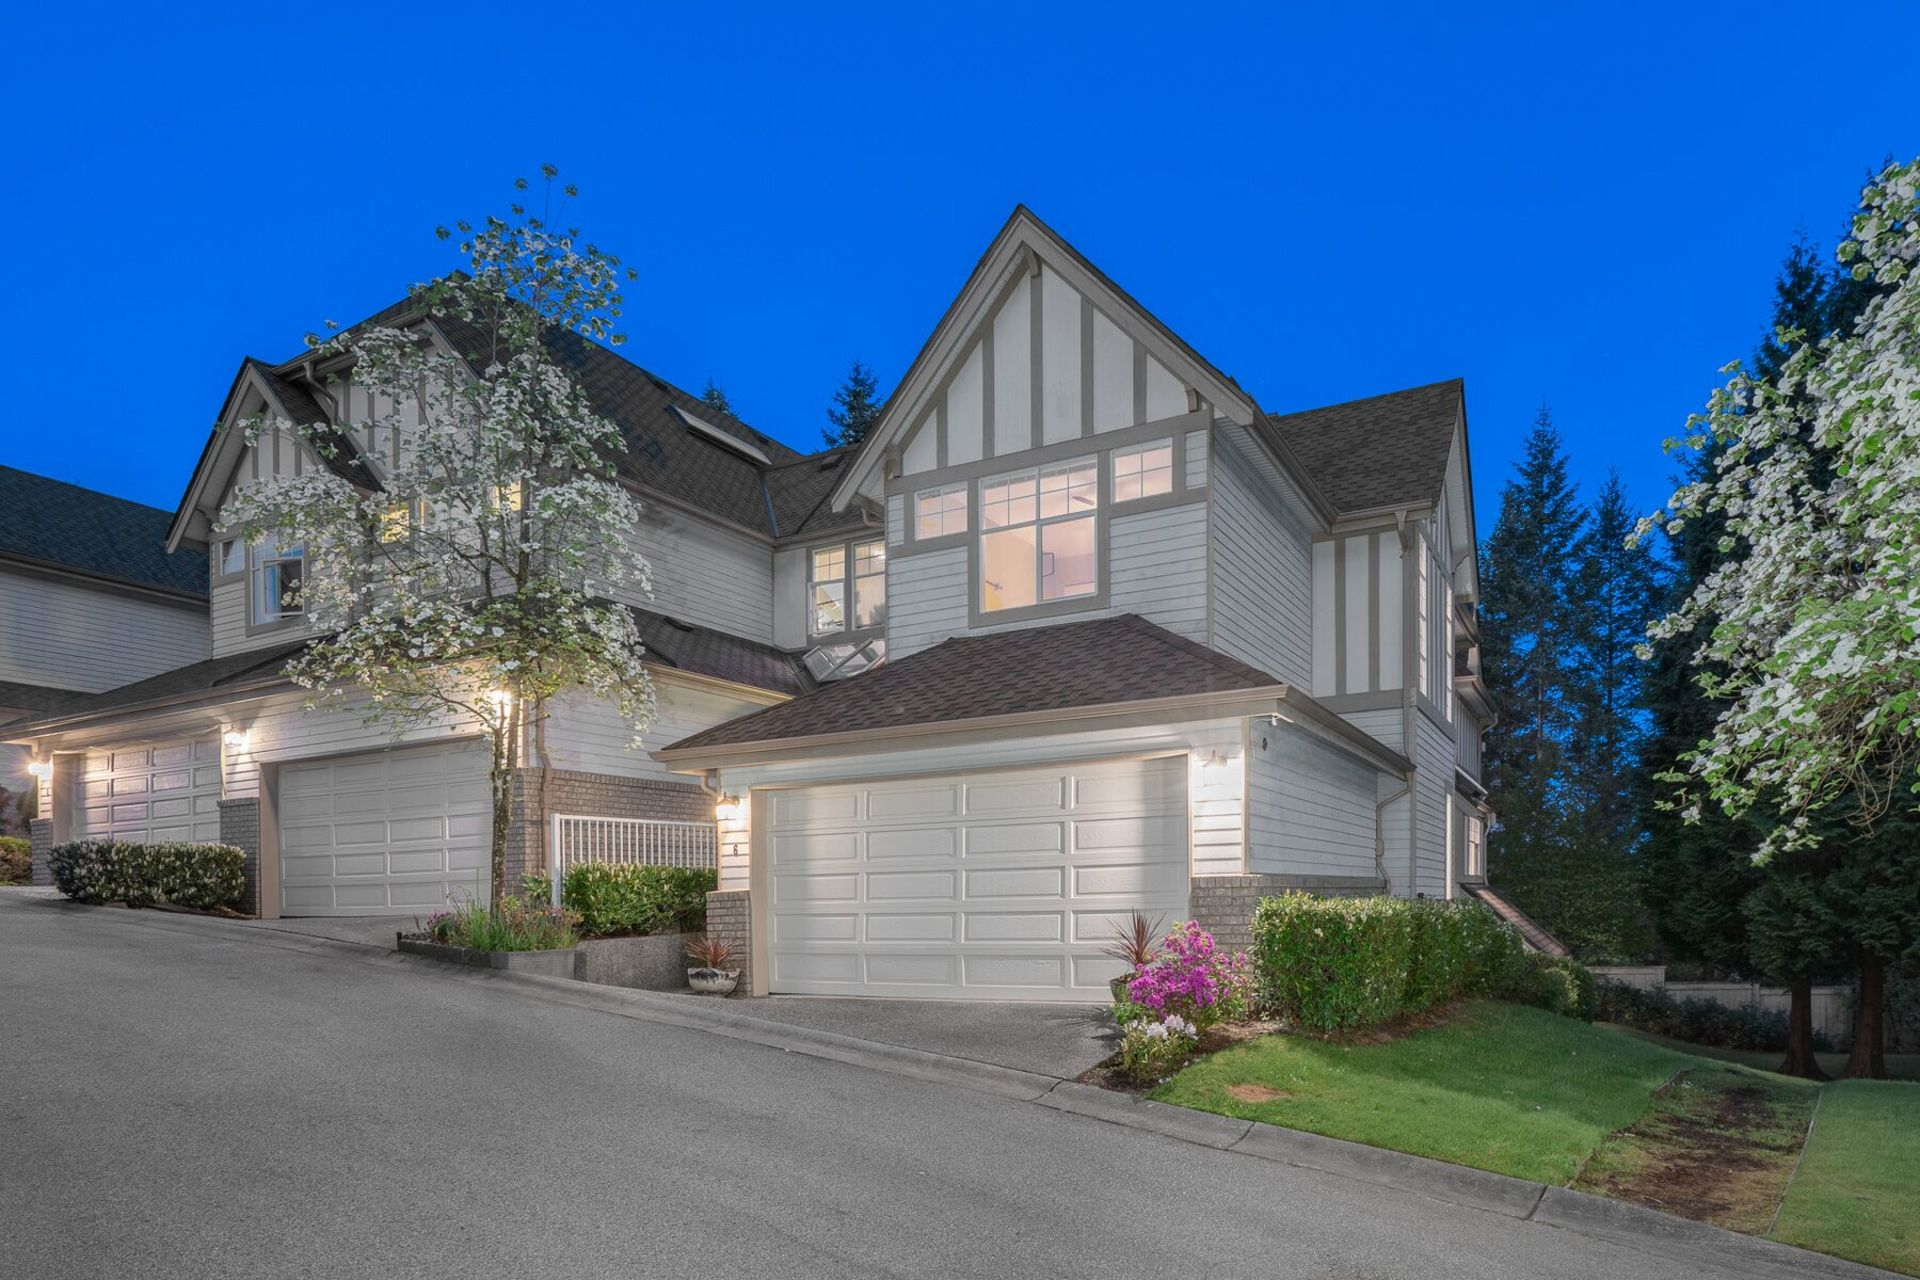 6 - 1 Aspenwood Drive, Heritage Woods PM, Port Moody 2